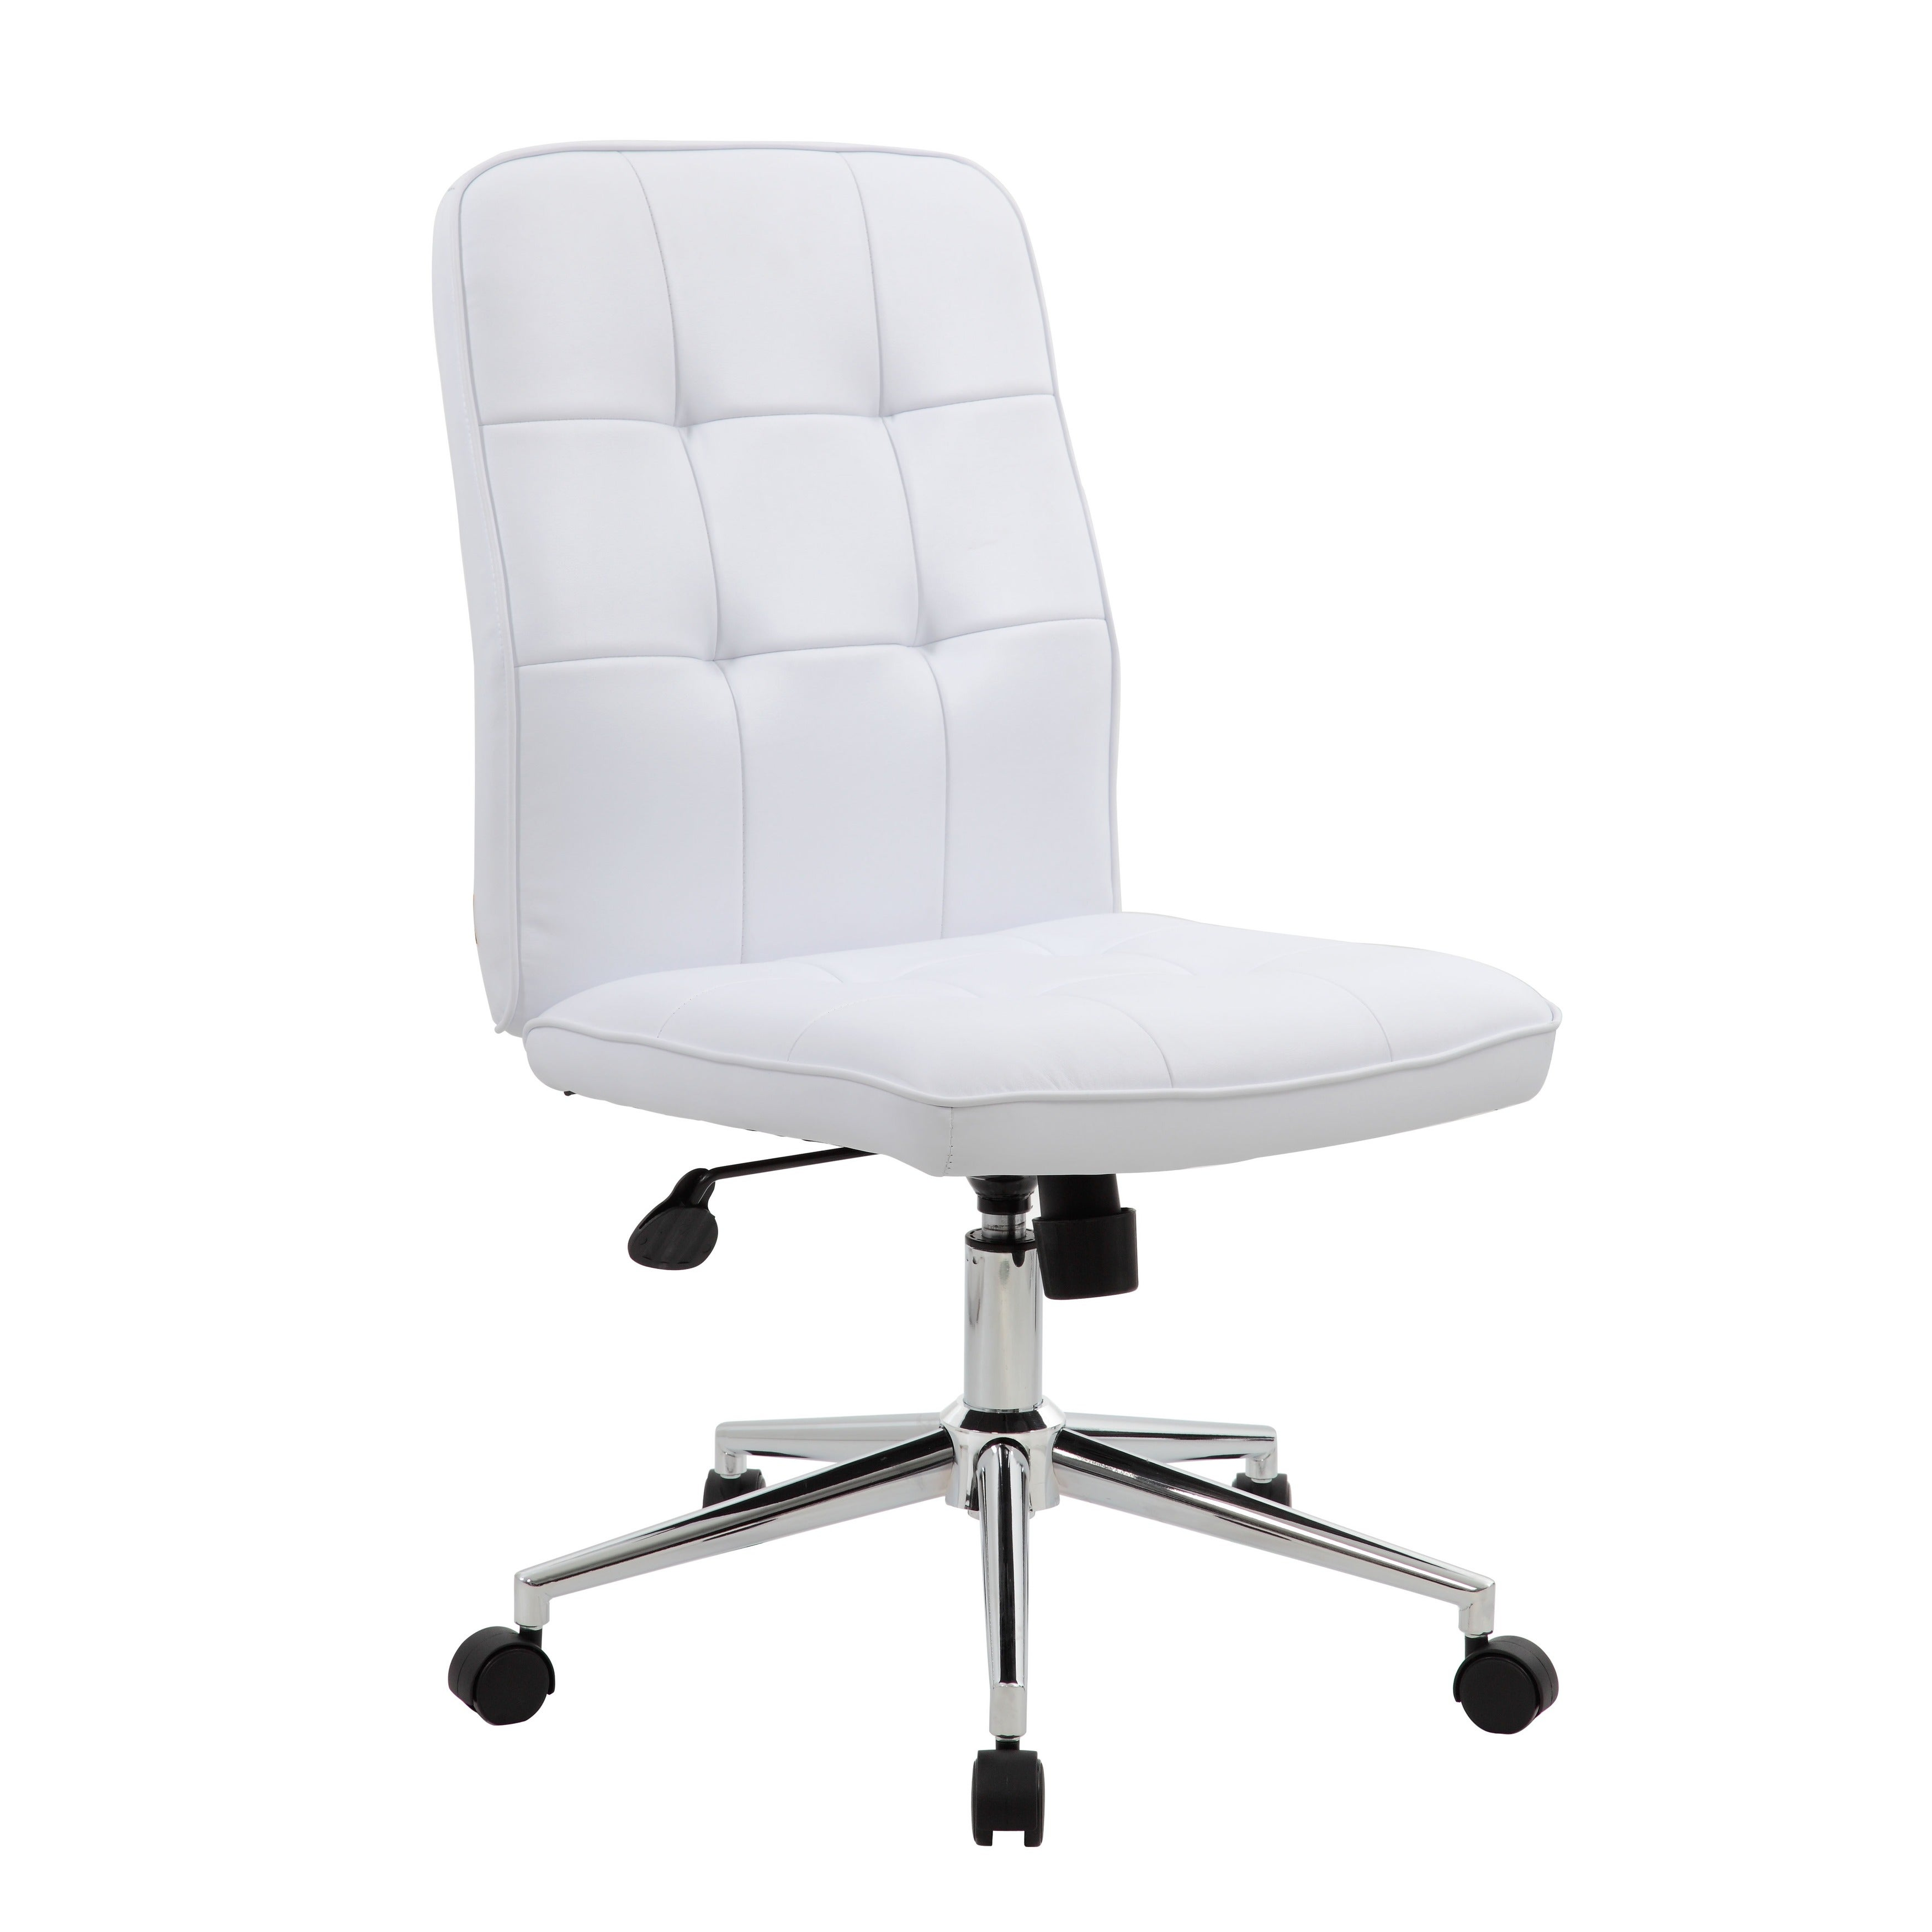 office ergonomics sba Office ergonomics ergonomics: ergonomics is the science of designing the job, equipment, and workplace to fit the worker proper ergonomic design is necessary to prevent repetitive strain injuries, which can develop over time and can lead to long-term disability[1.